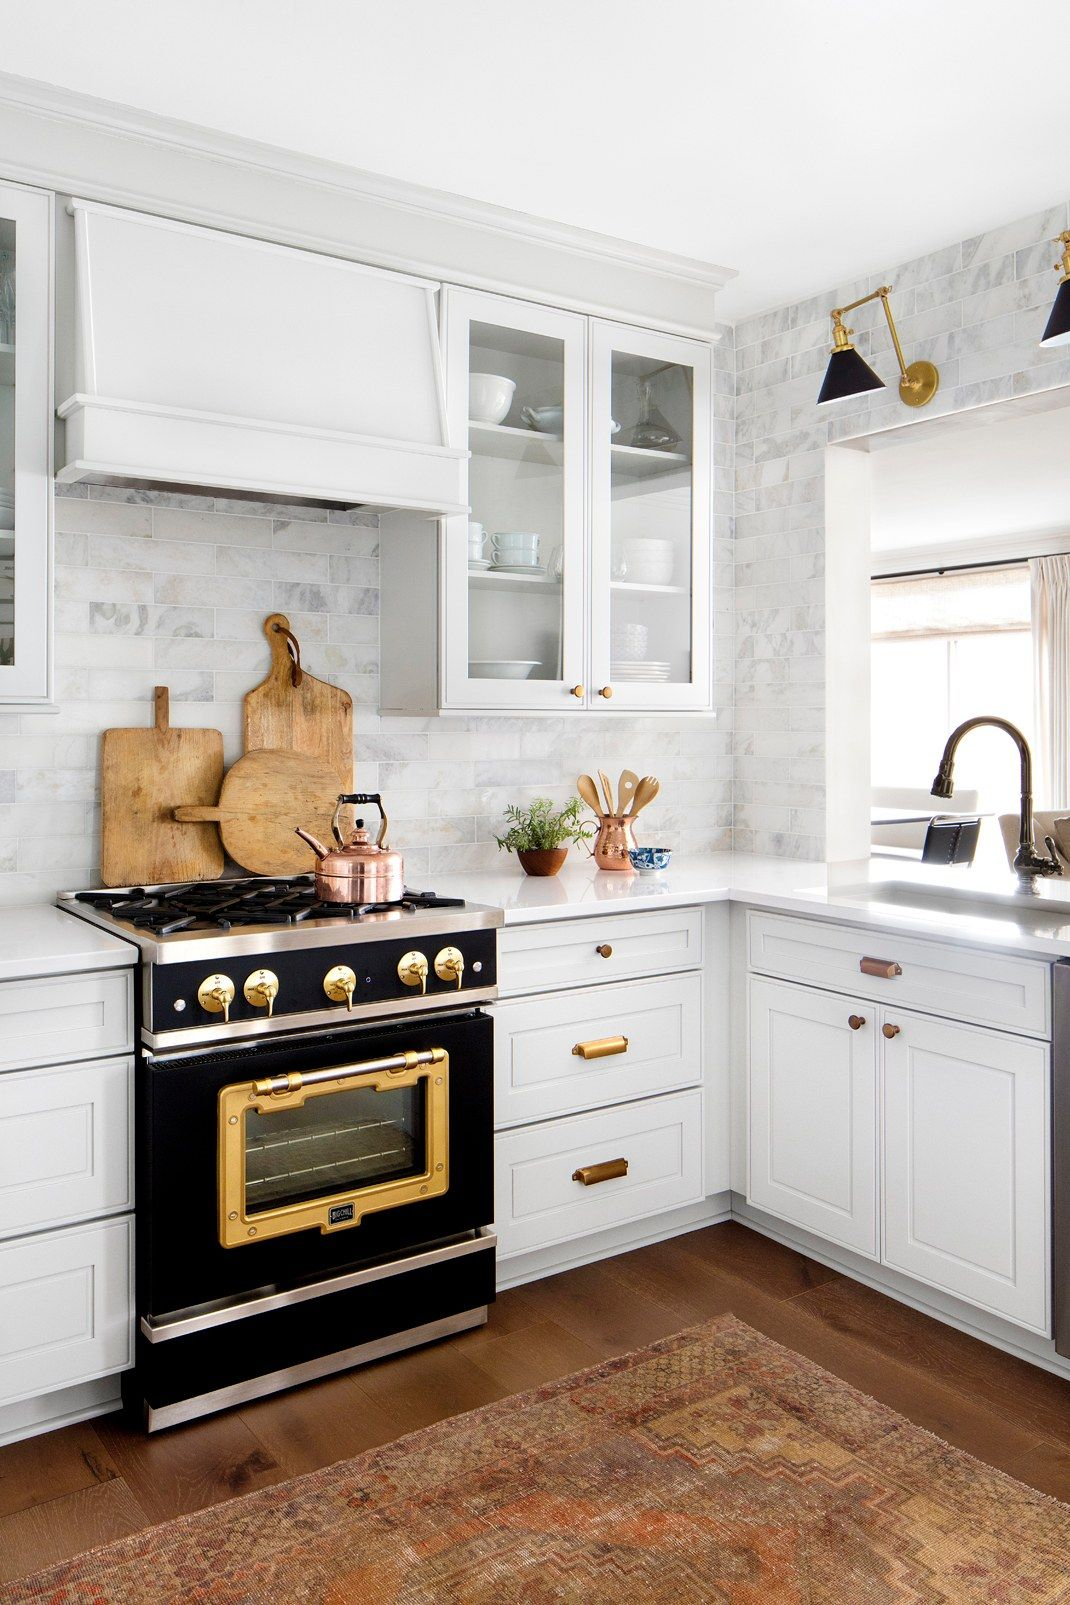 9 Cabinet Styles For Your Next Kitchen Reno   Kitchen cabinet ...